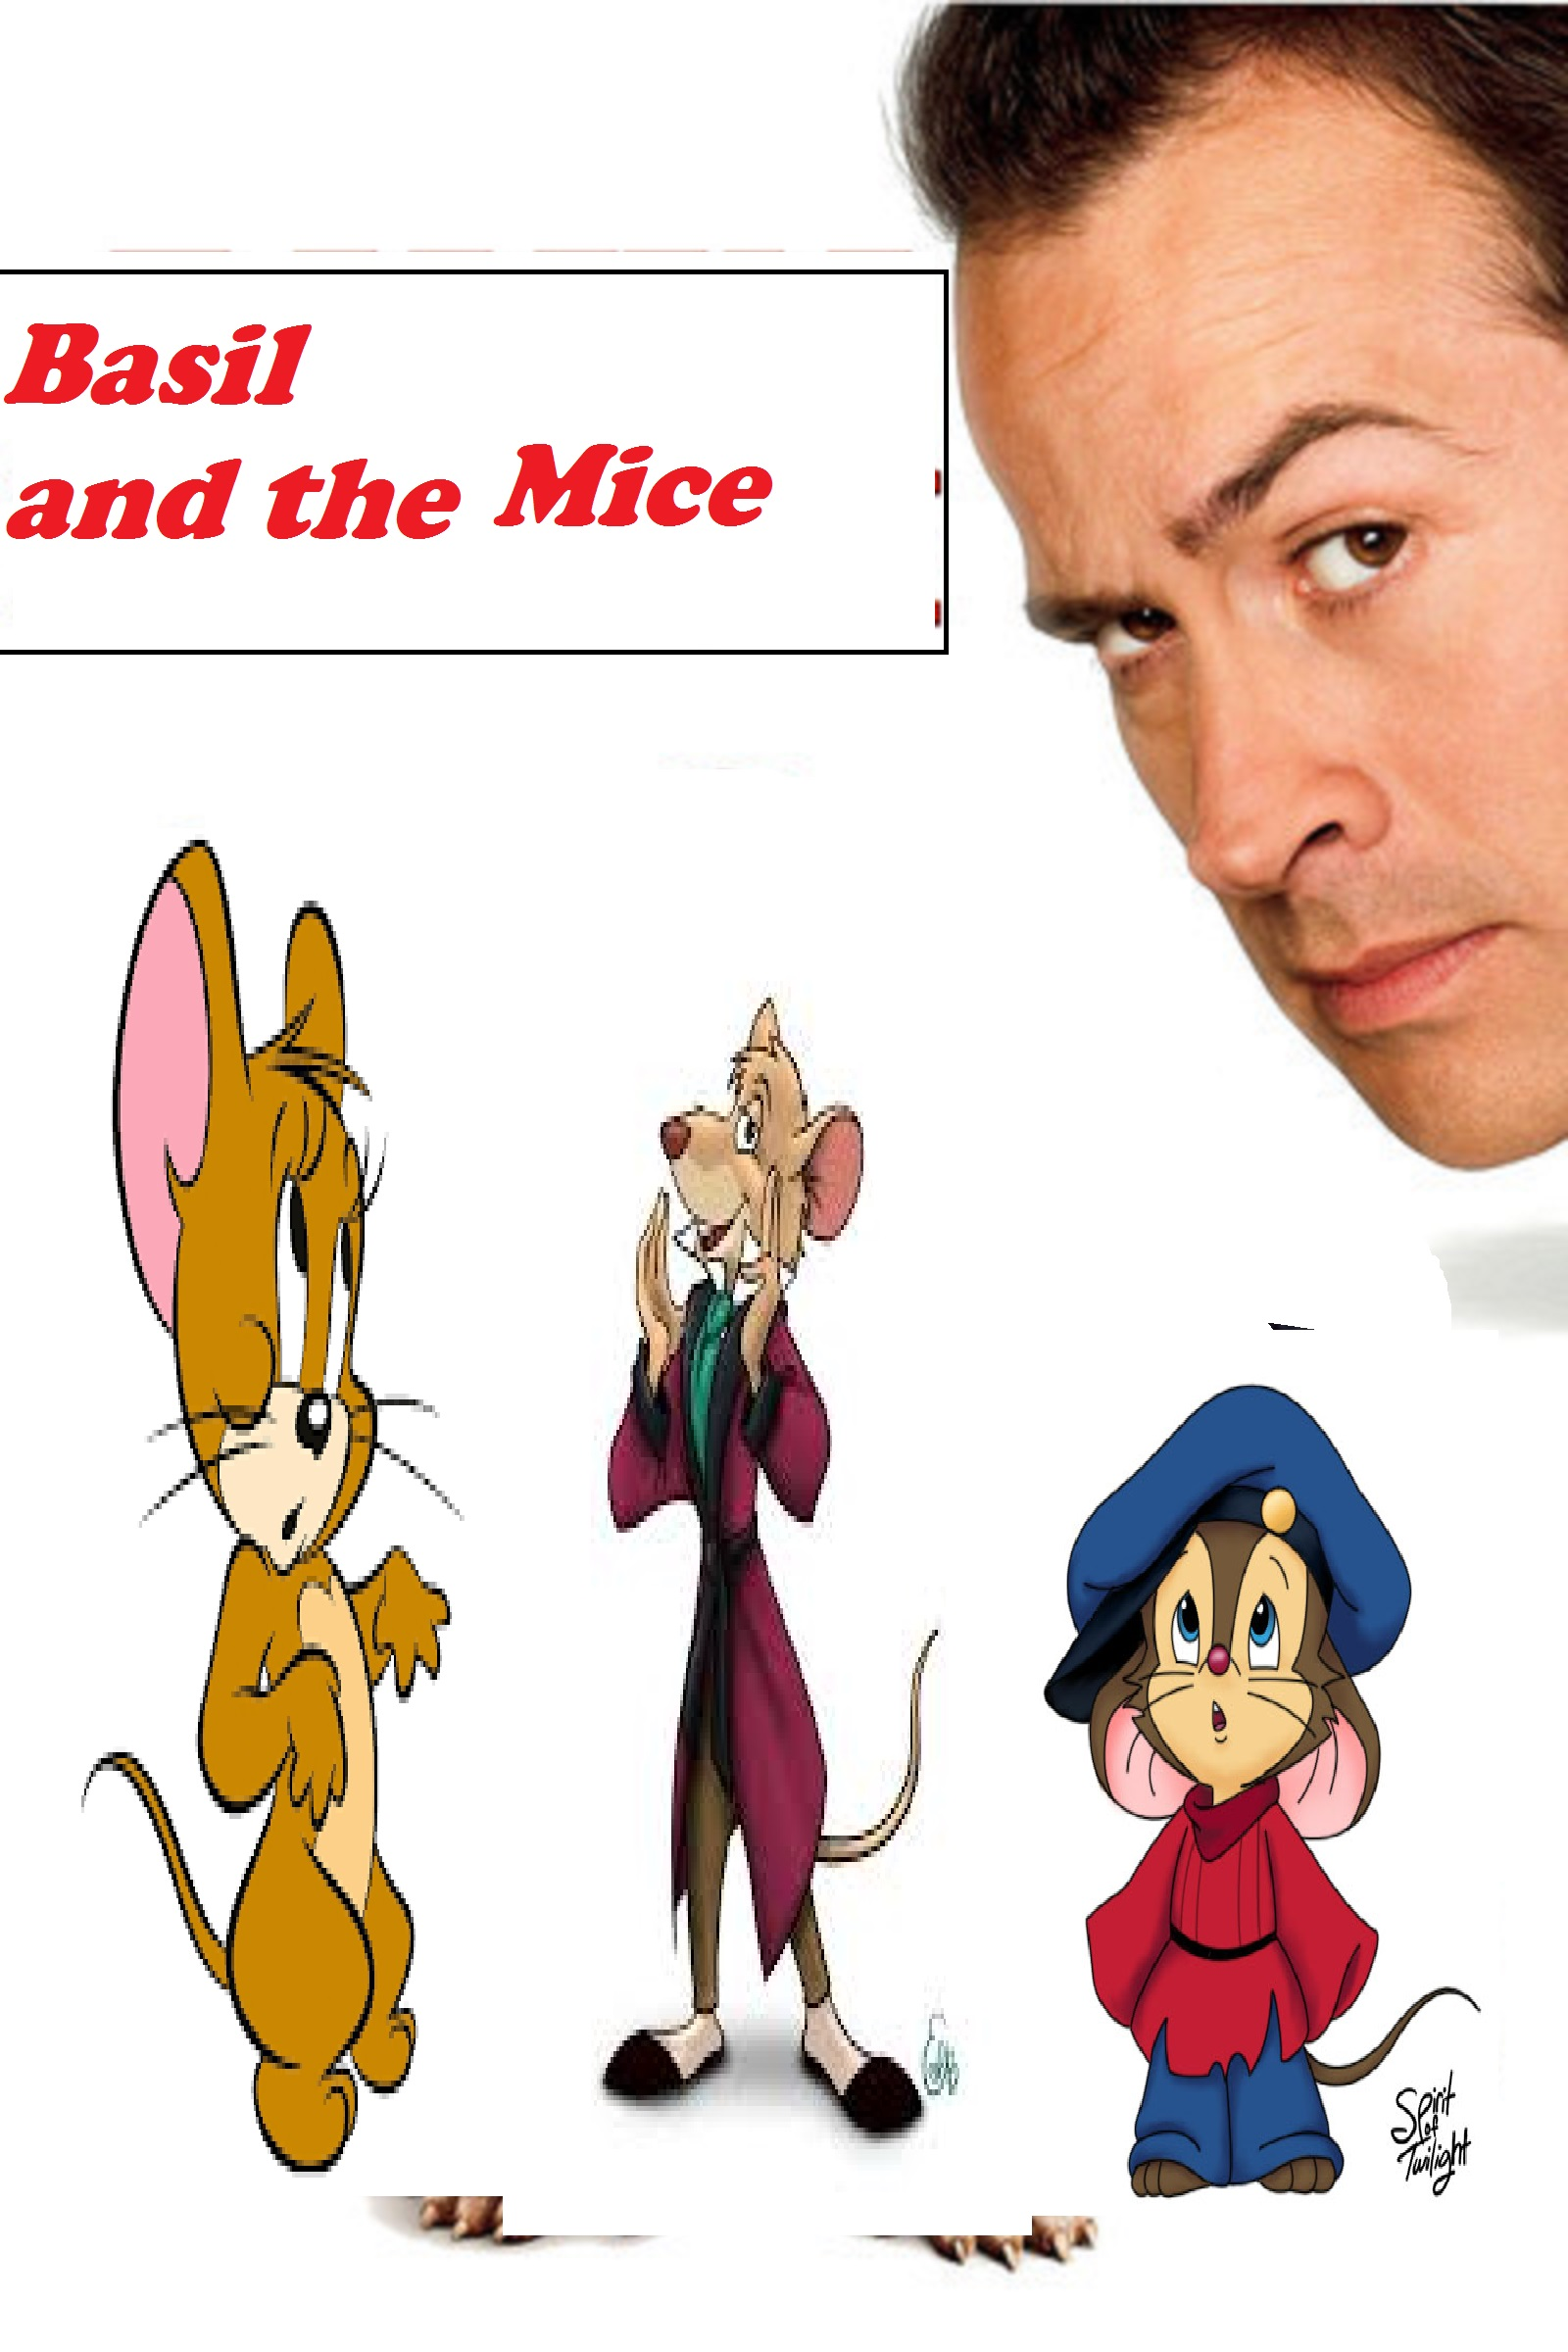 Basil and the Mice